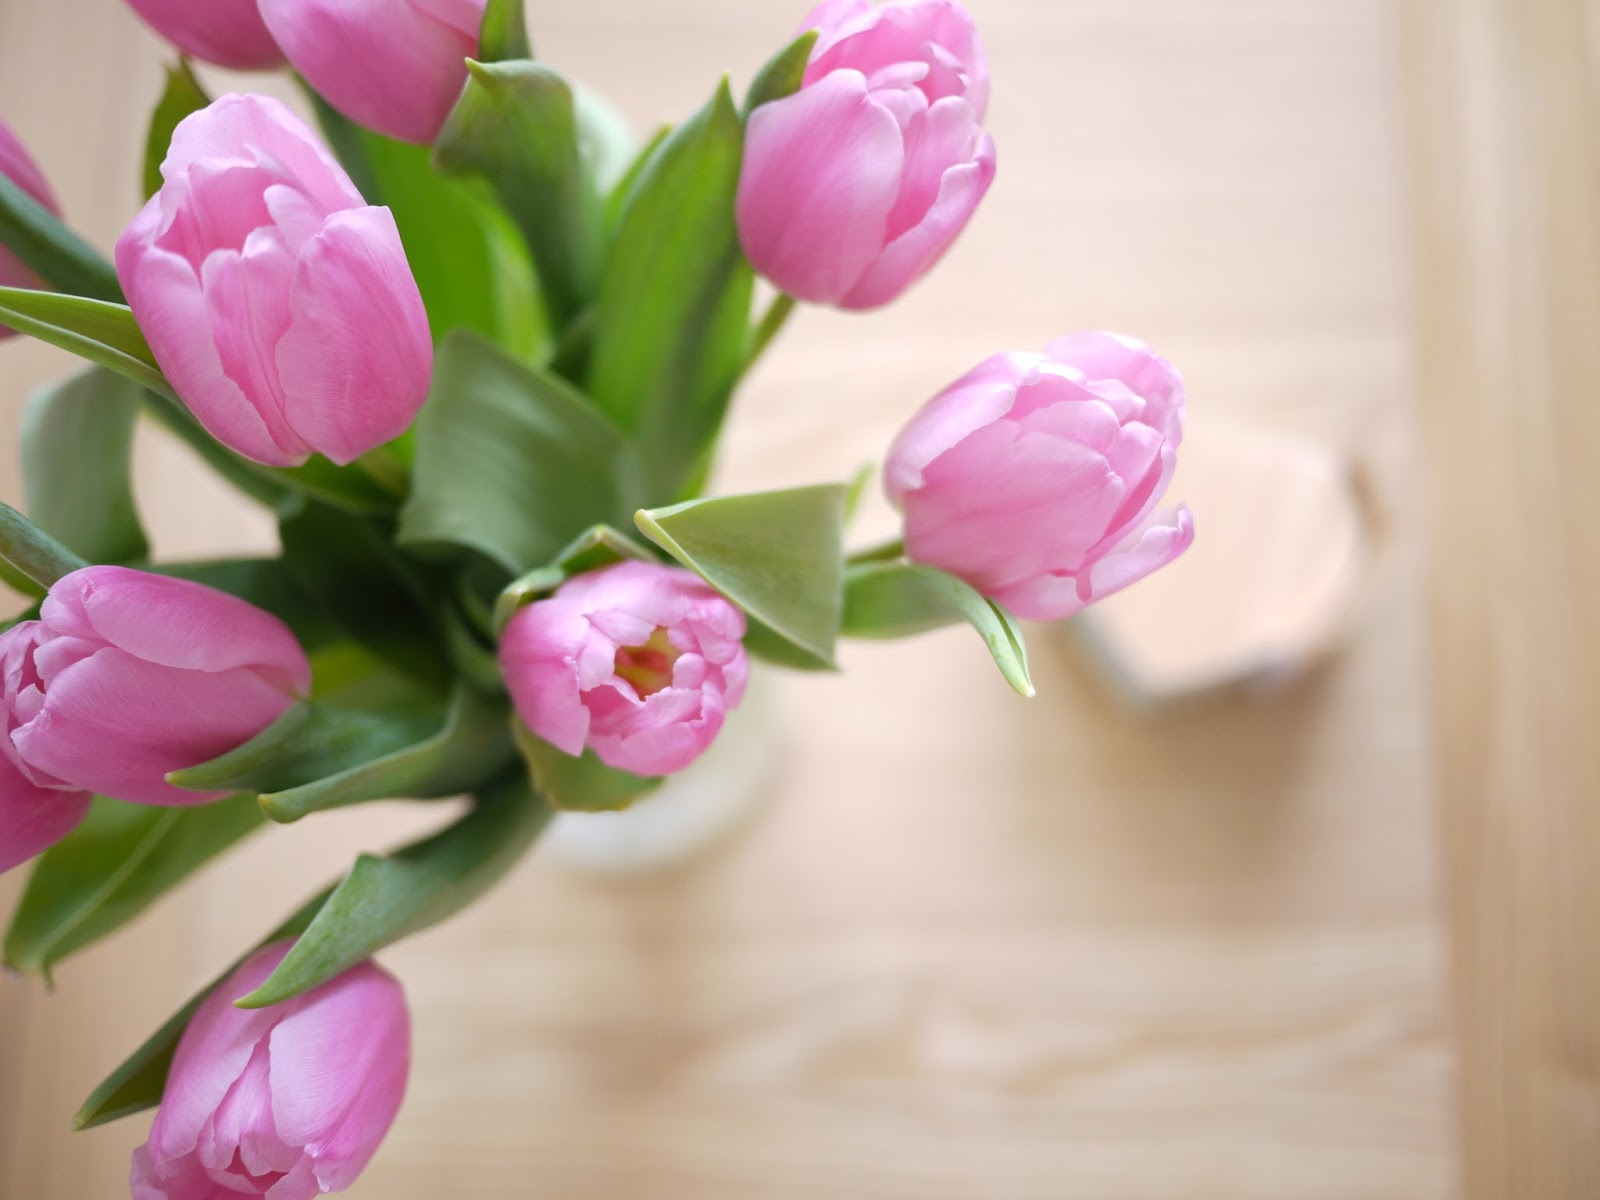 A picture of tulips at springtime